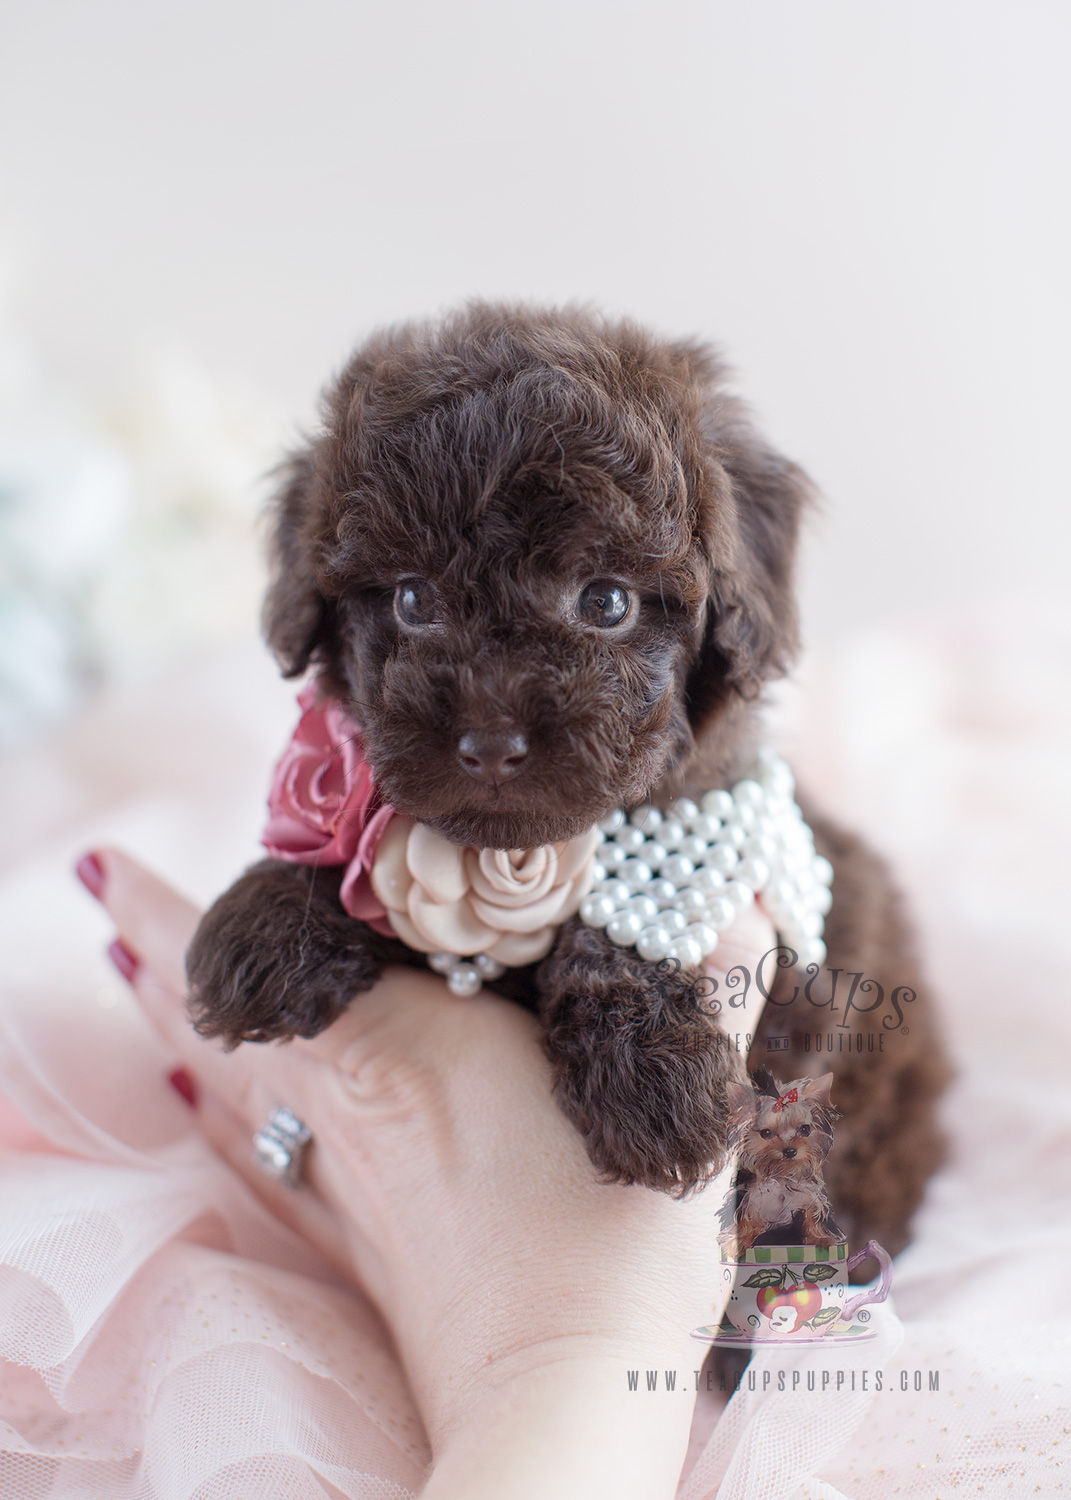 Cream Poodle Puppies For Sale In Florida Teacups Puppies Boutique